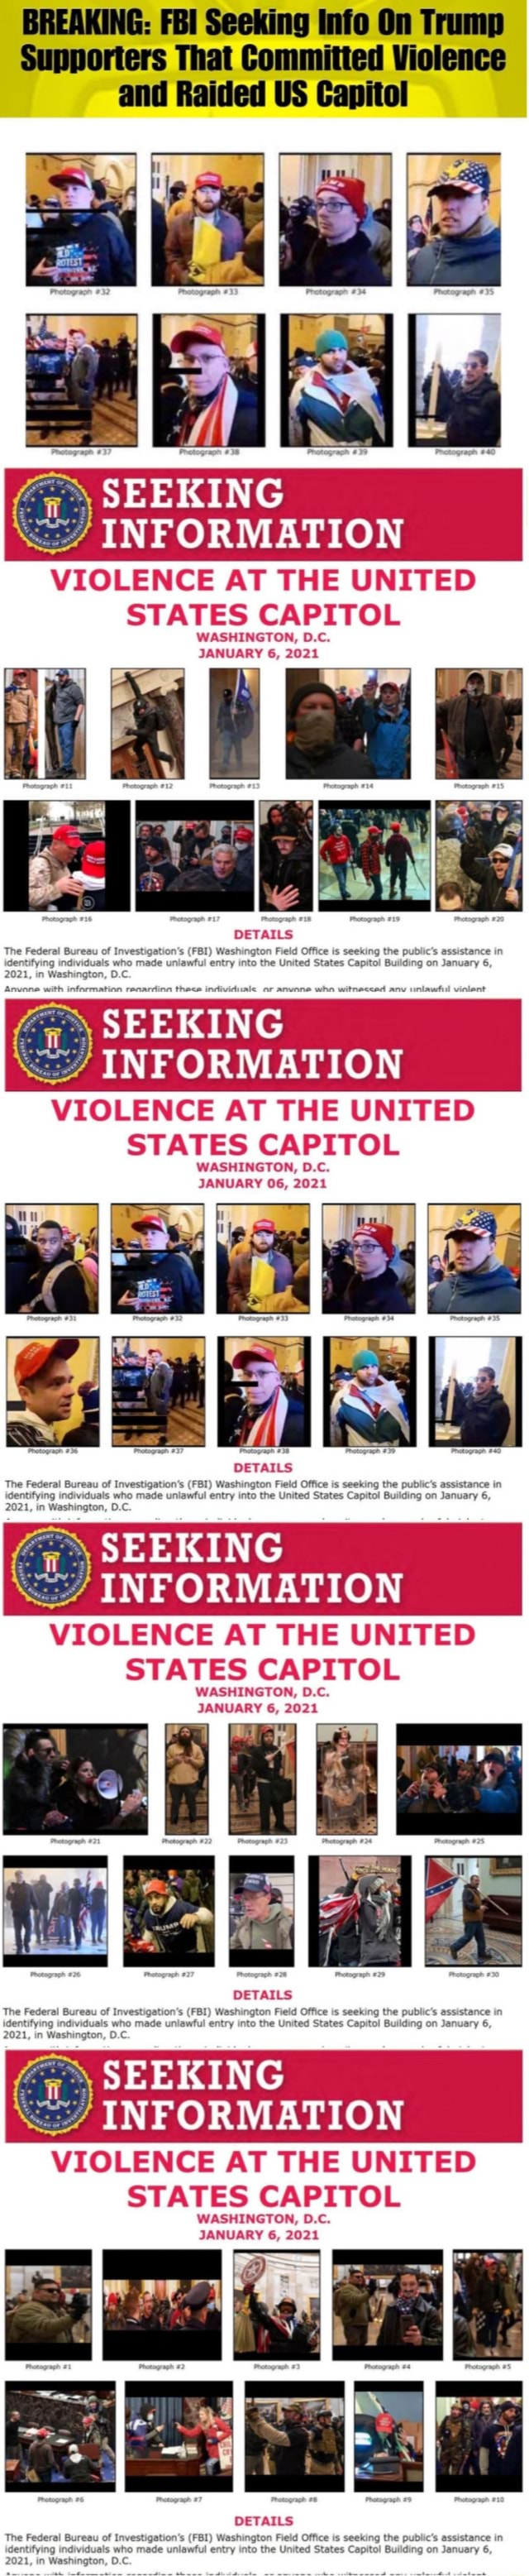 BREAKING FBI Seeking Info On Trump Supporters That Committed Violence and Raided US Capitol SEEKING INFORMATION VIOLENCE AT THE UNITED STATES CAPITOL WASHINGTON, D.C. JANUARY 6, 2021 DETAILS The Federal Bureau of Investigation's FBI Washington Field Office is seeking the public's assistance in identifying individuals who made unlawful entry into the United States Capitol Building on January 6, 2021, in Washington, D.C Anvane with infarmatinn renardinn thece individuale ar anvane who witnecced any unlawful vinlent SEEKING INFORMATION VIOLENCE AT THE UNITED STATES CAPITOL WASHINGTON, D.C. JANUARY 06, 2021 al Pranogranh 38 DETAILS The Federal Bureau of Investigation's FBI Washington Field Office is seeking the public's assistance in identifying individuals who made unlawful entry into the Uni